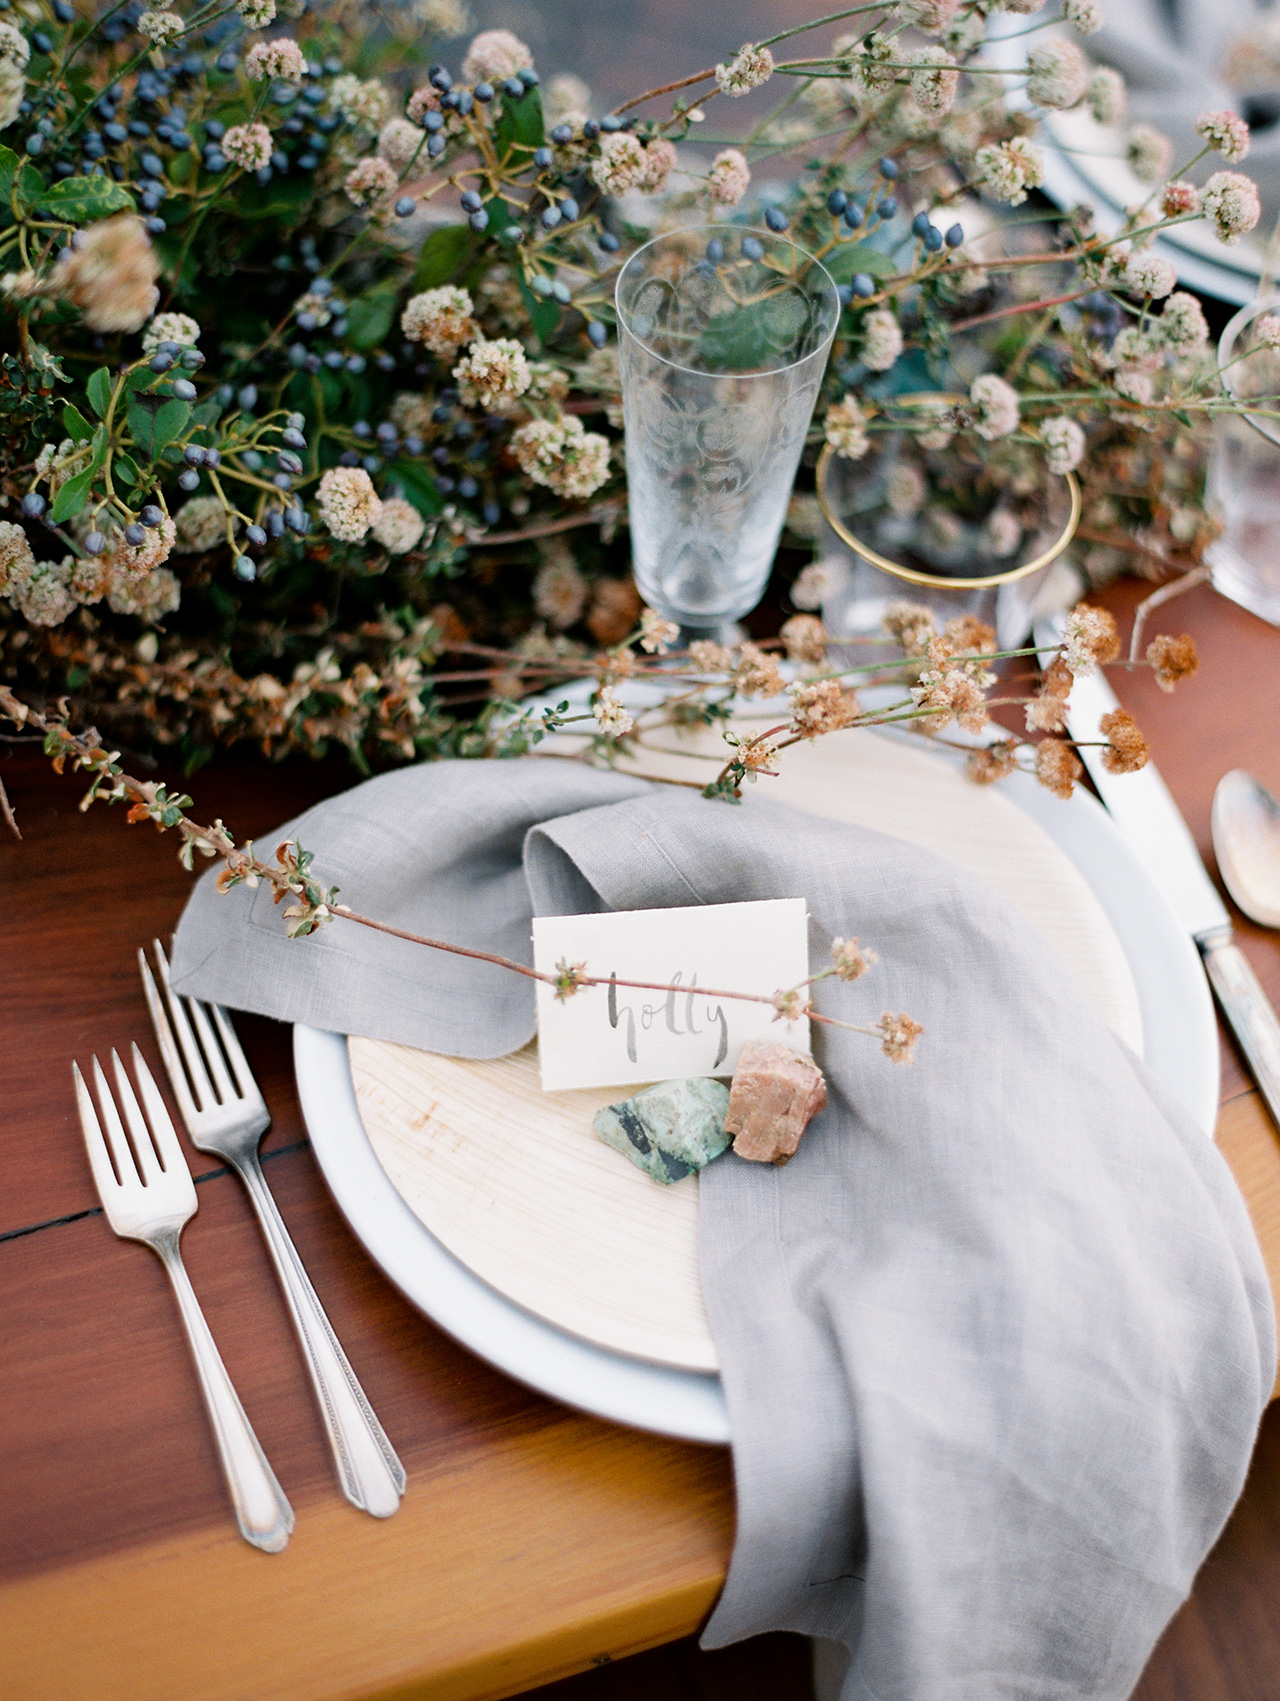 Berry-centric centerpieces cool gray linens gold-rimmed glassware